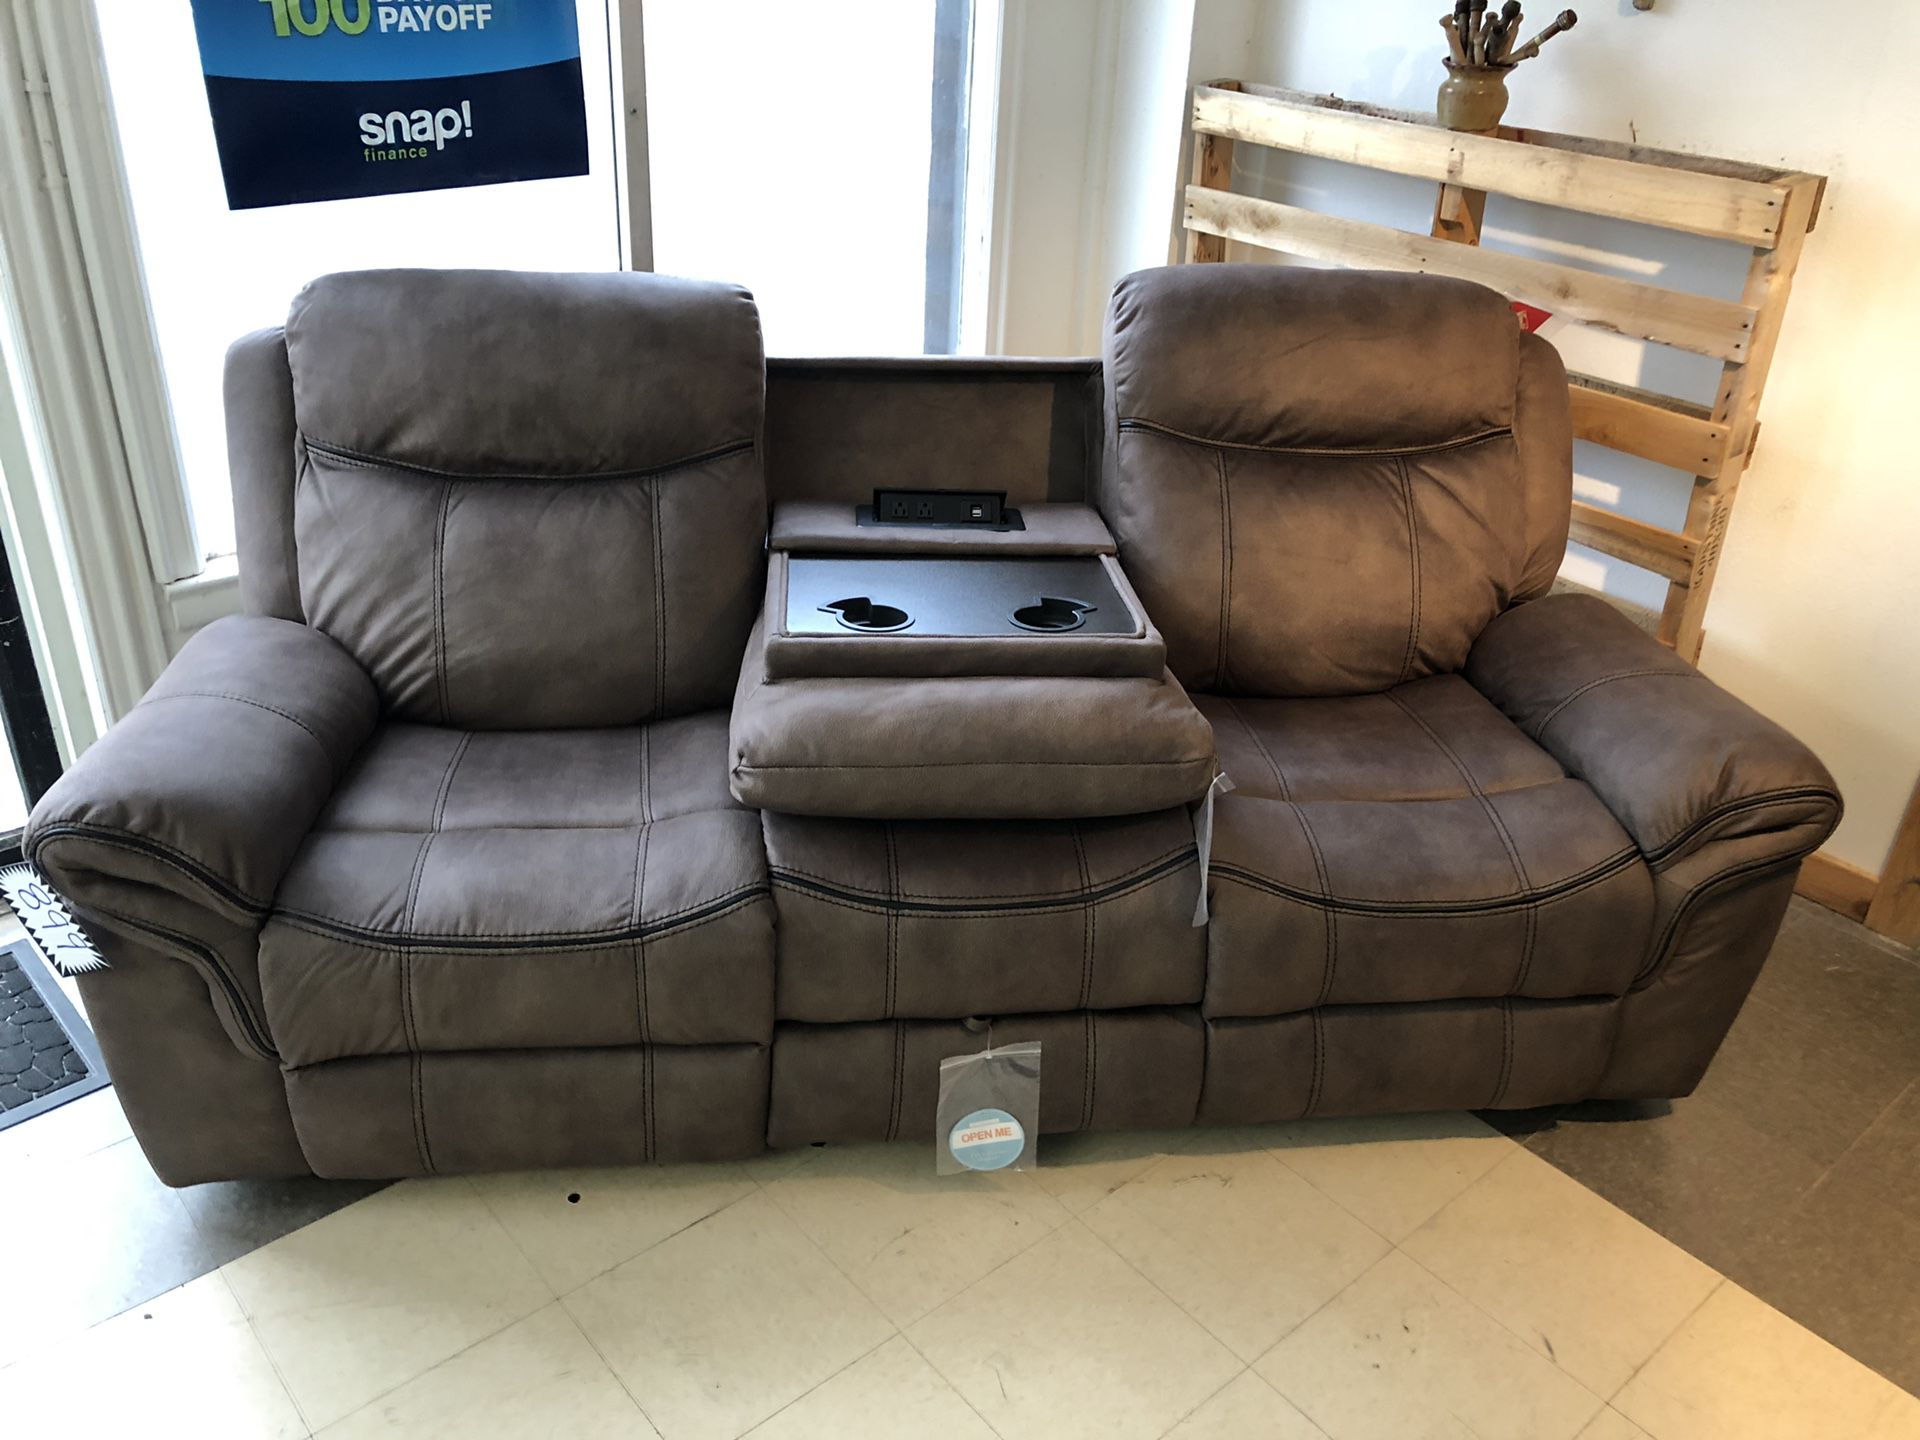 WATER RESISTANT Microfiber smooth bomber jacket material recliner. Pull out table with cup holders. Built in USB ports and wall plug ins. Hidden draw